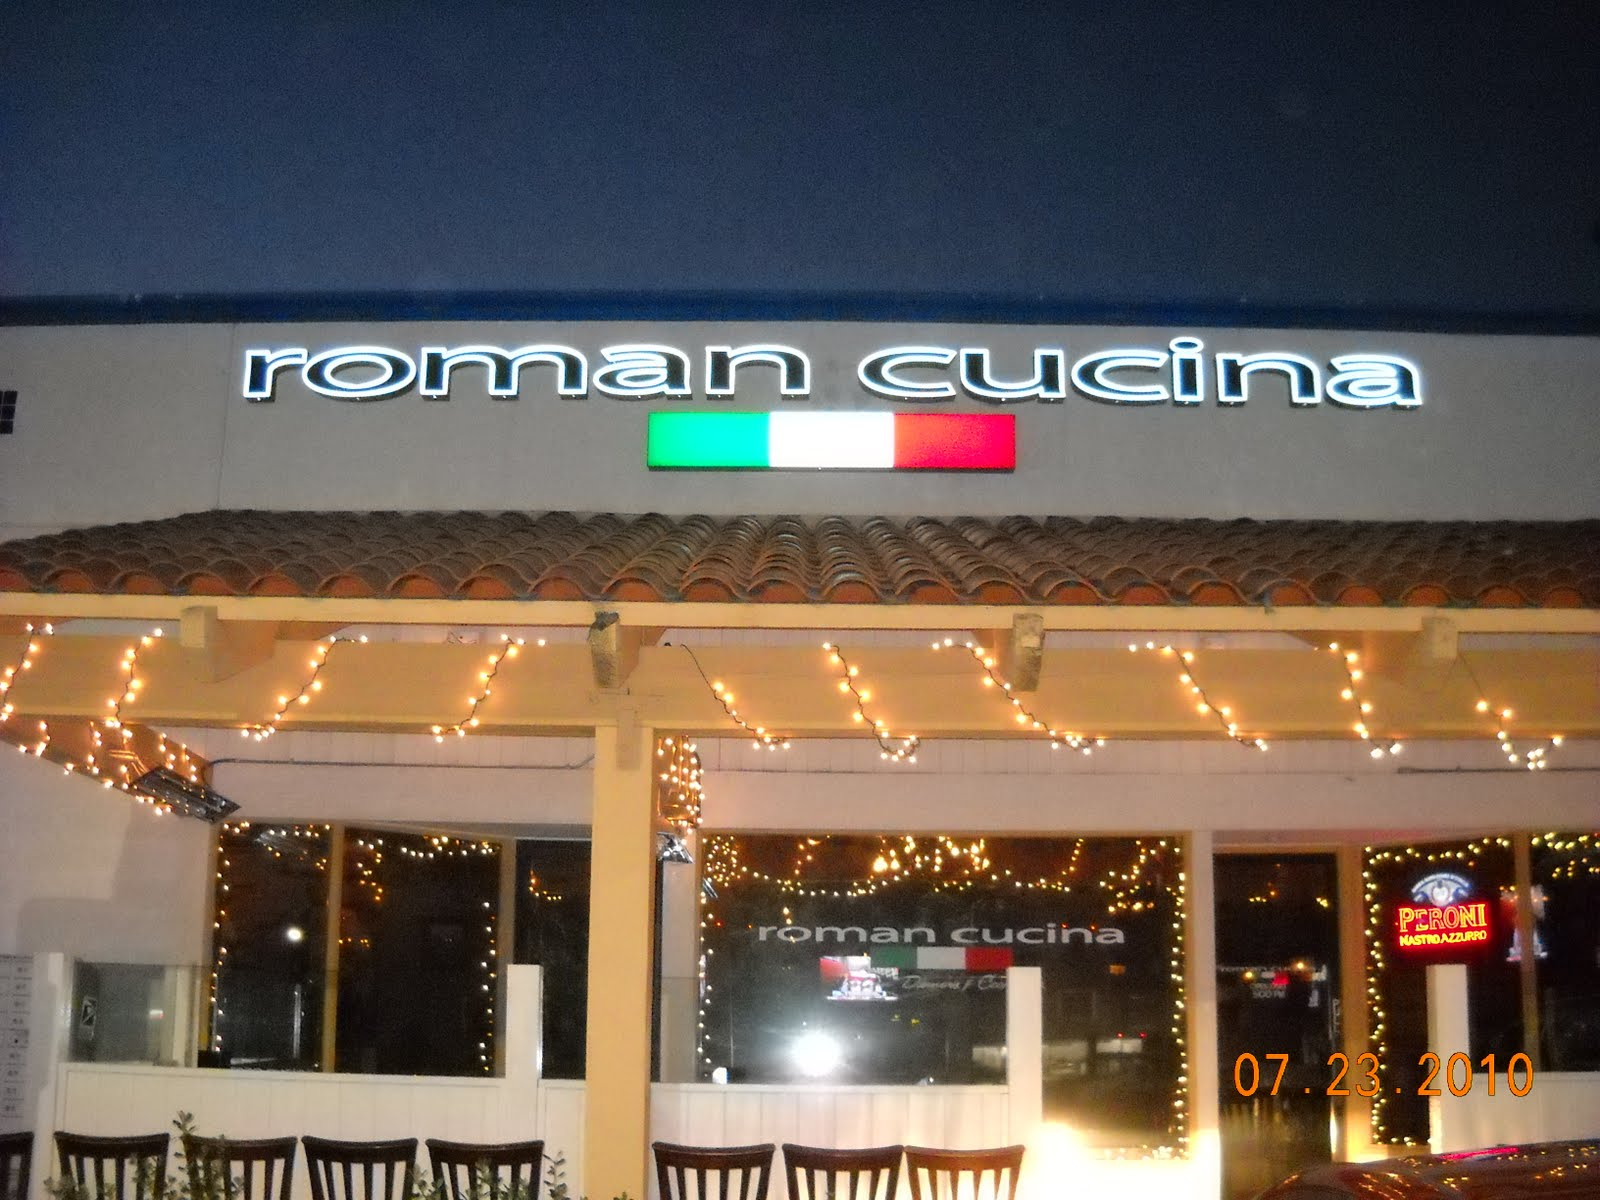 Cucina Alessa Huntington Beach Happy Hour Eating My Way Through Oc All Roads Lead To Roman Cucina